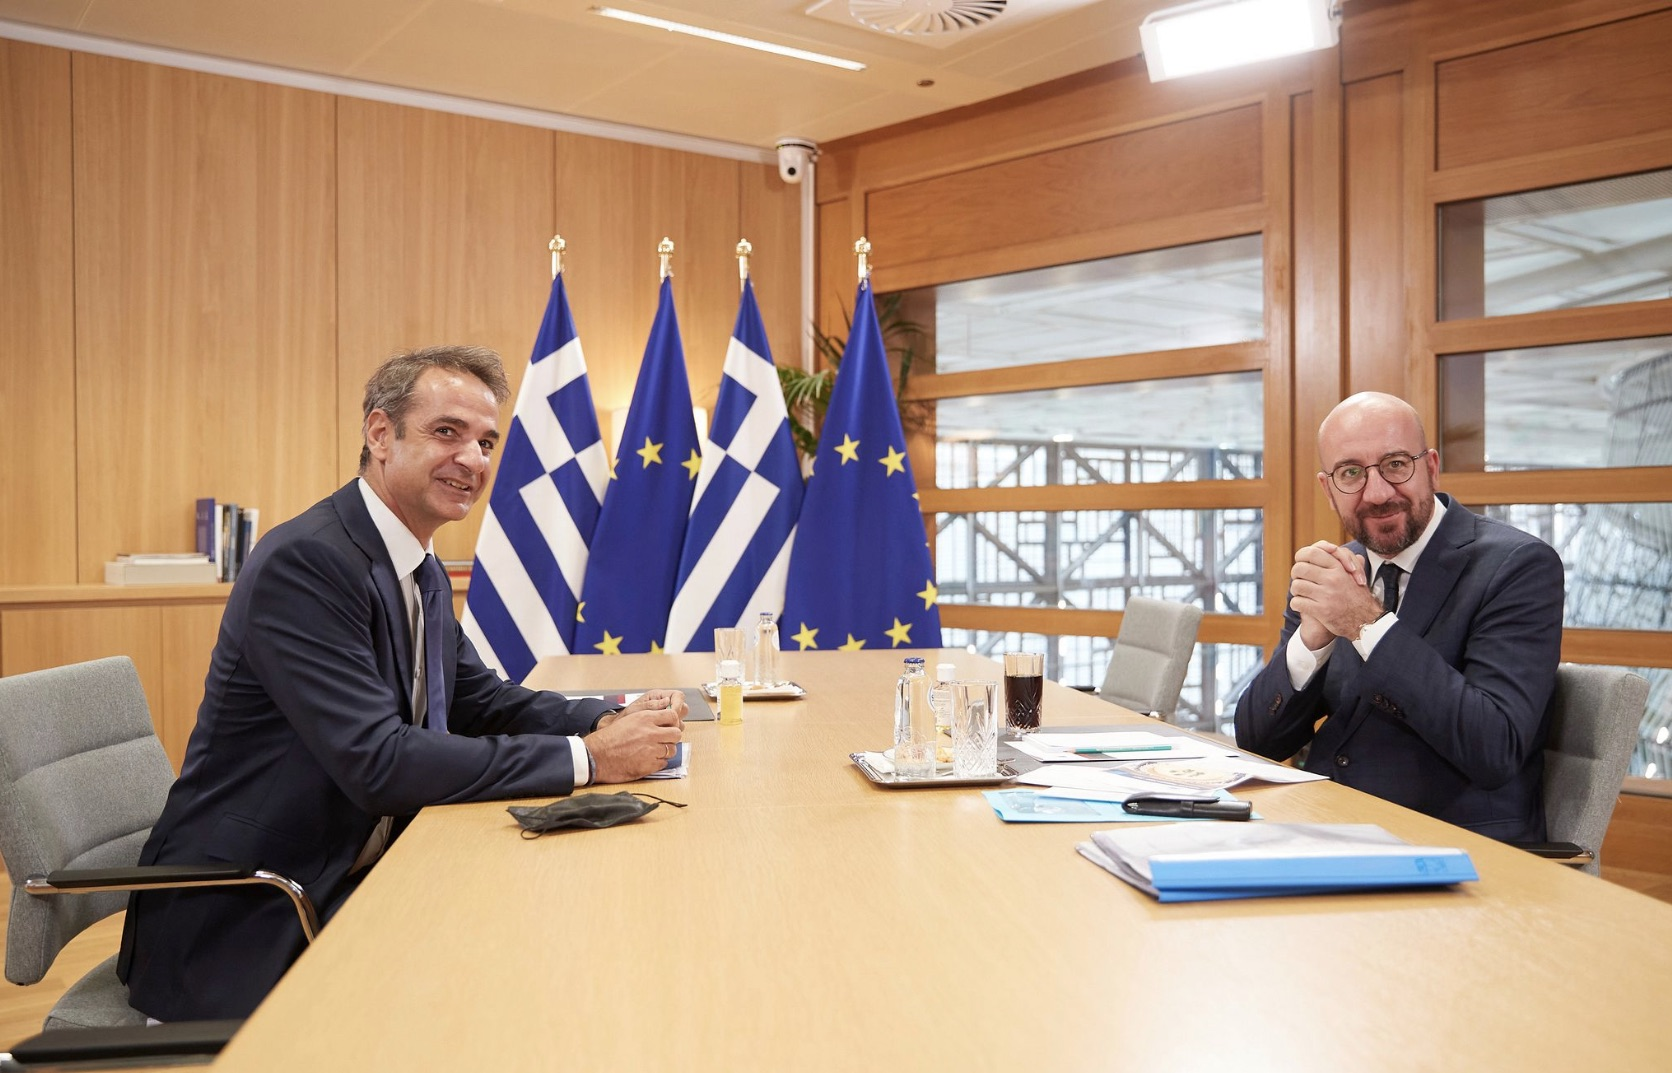 Mitsotakis: Greece seeks to cultivate good neighborly relations without tensions in the region